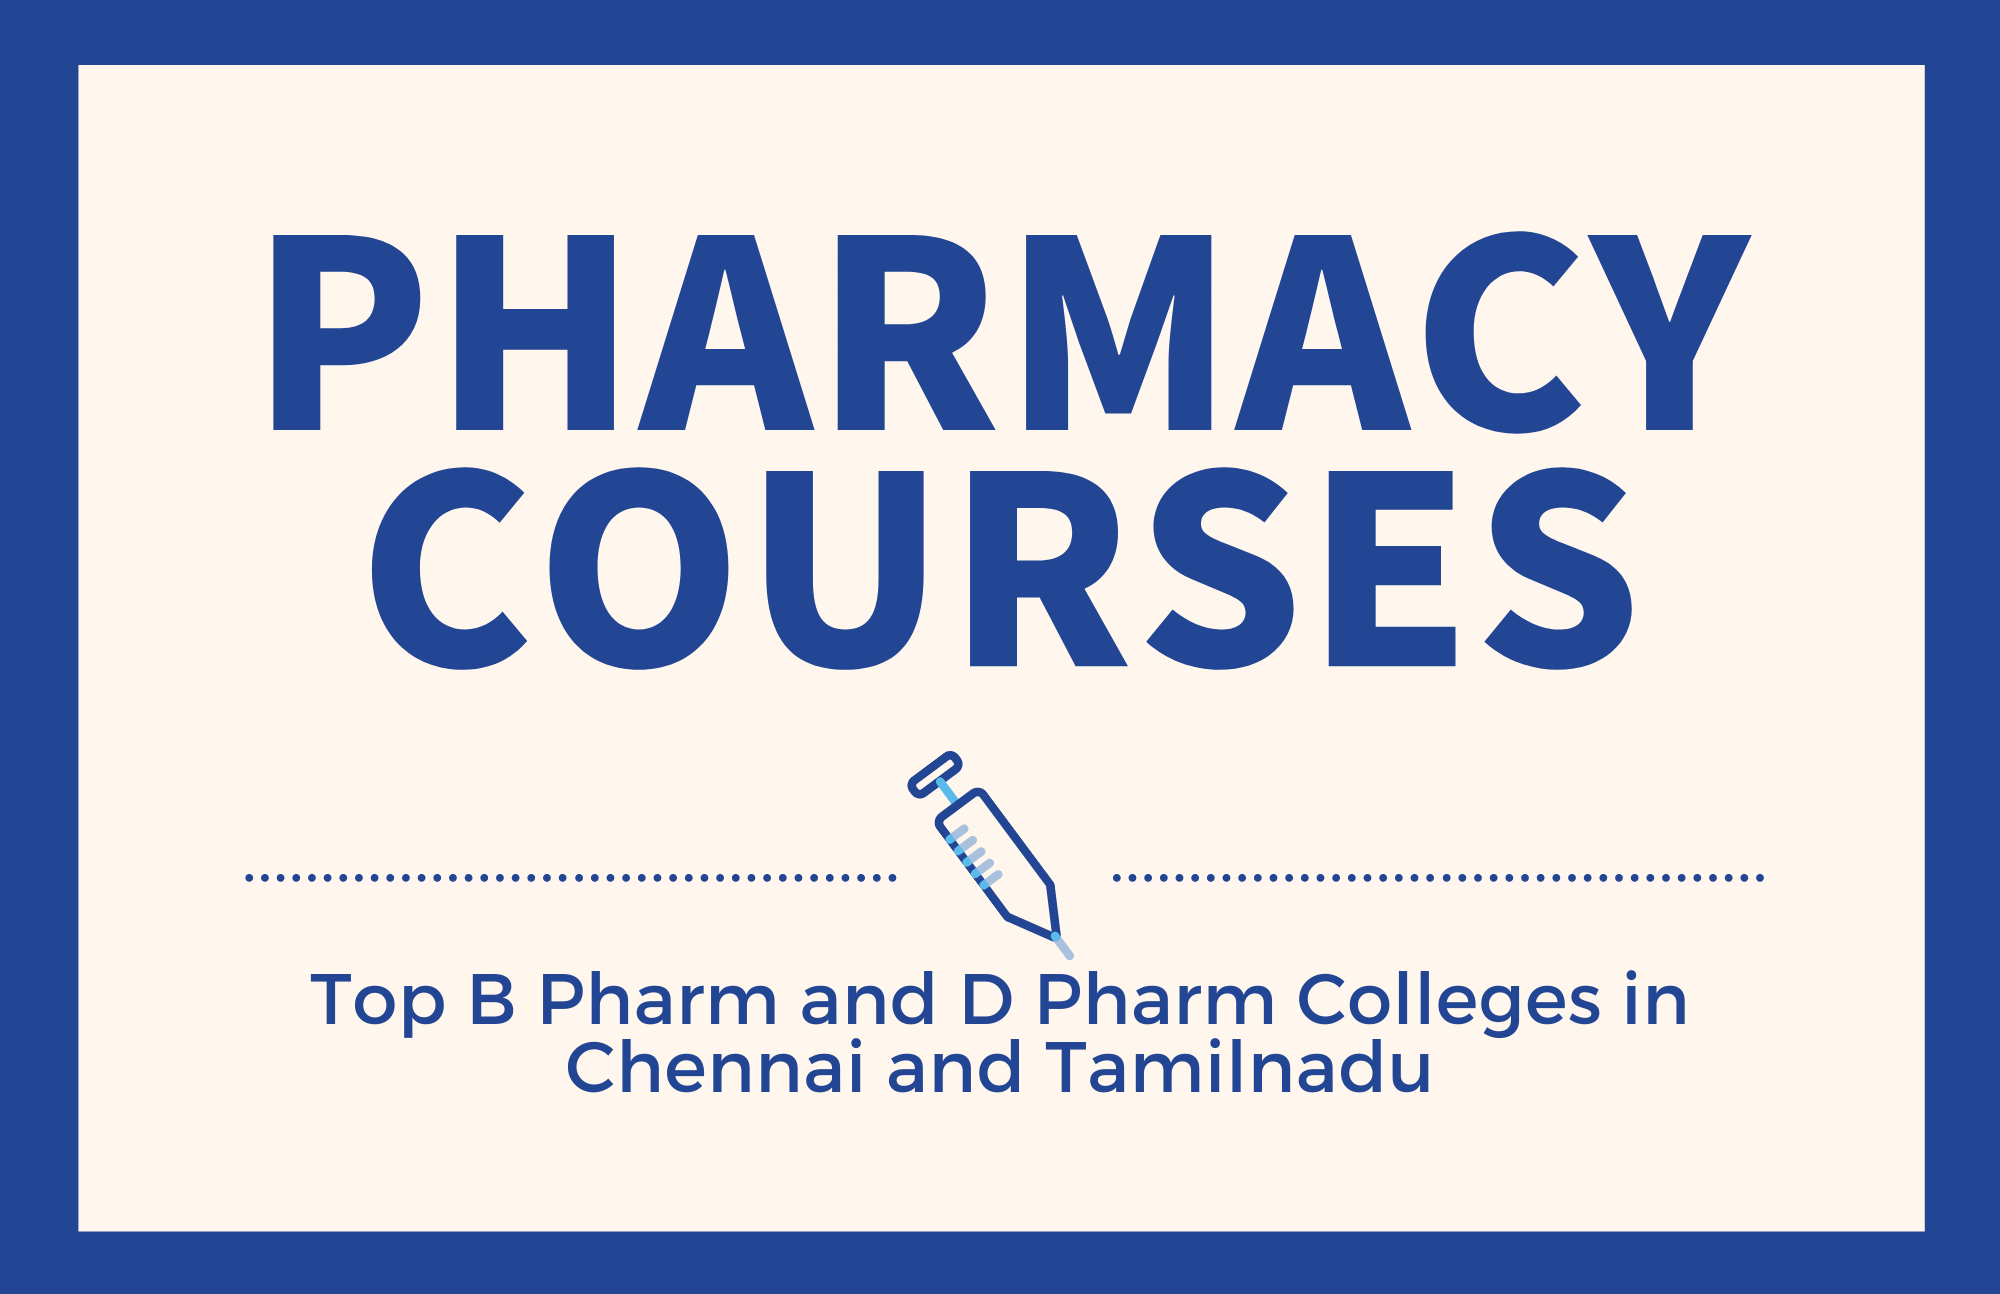 B Pharm and D Pharm Colleges in Tamilnadu and Chennai